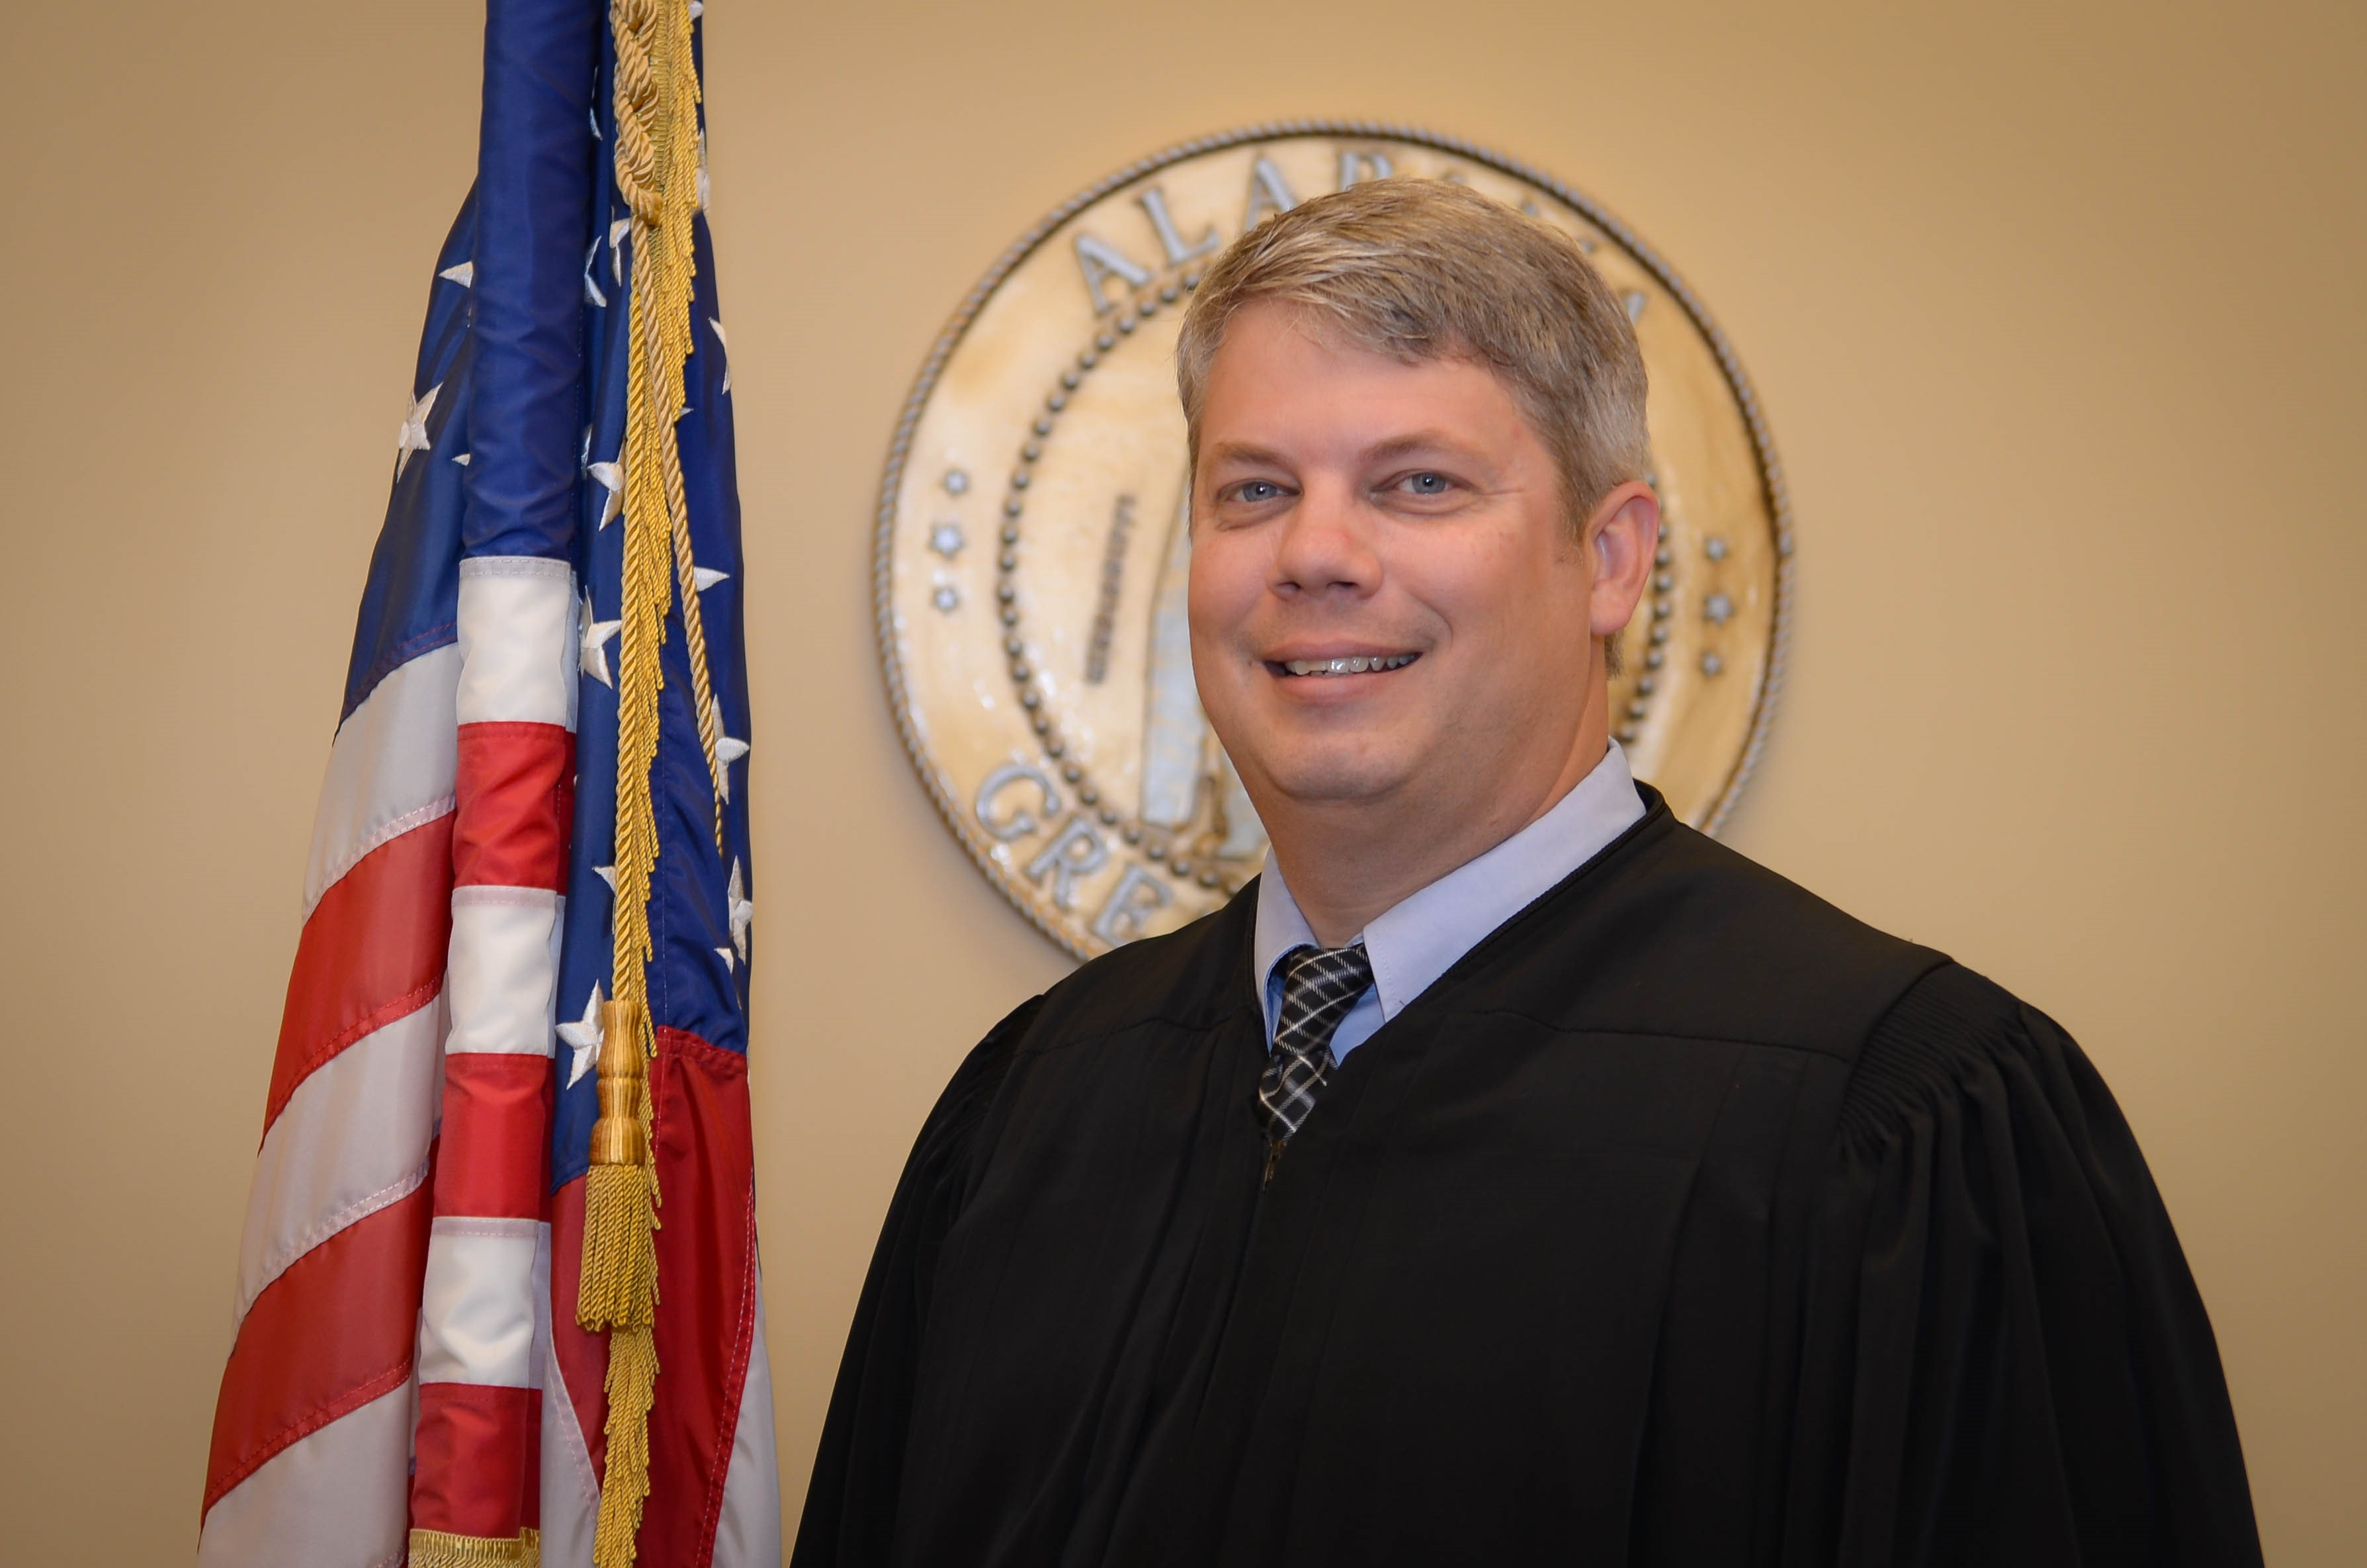 Circuit Court Judges Limestone County Judge Place 1 B Chadwick Wise 39th Judicial